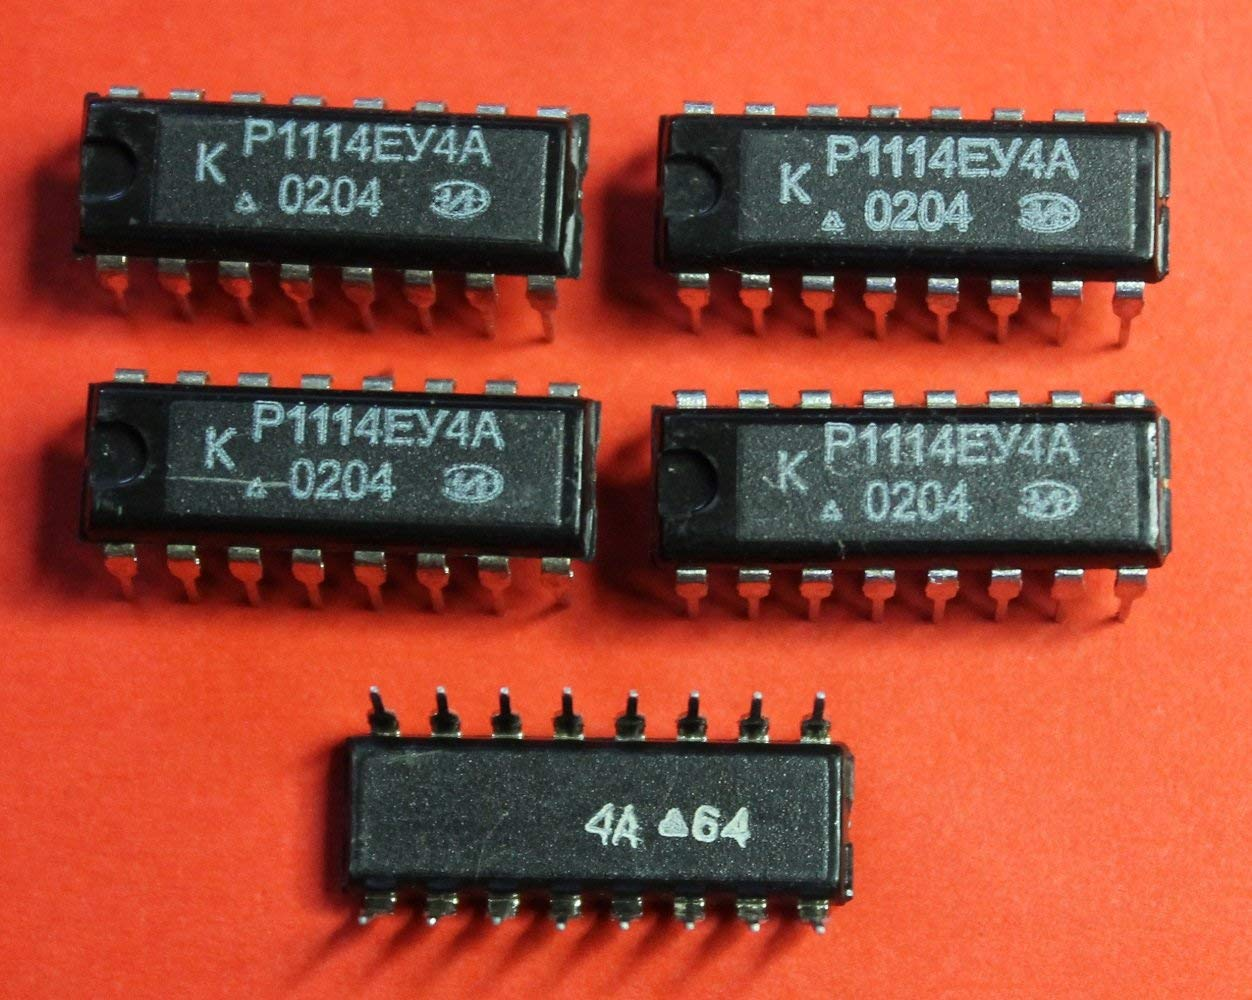 Cheap Ic 494, find Ic 494 deals on line at Alibaba com